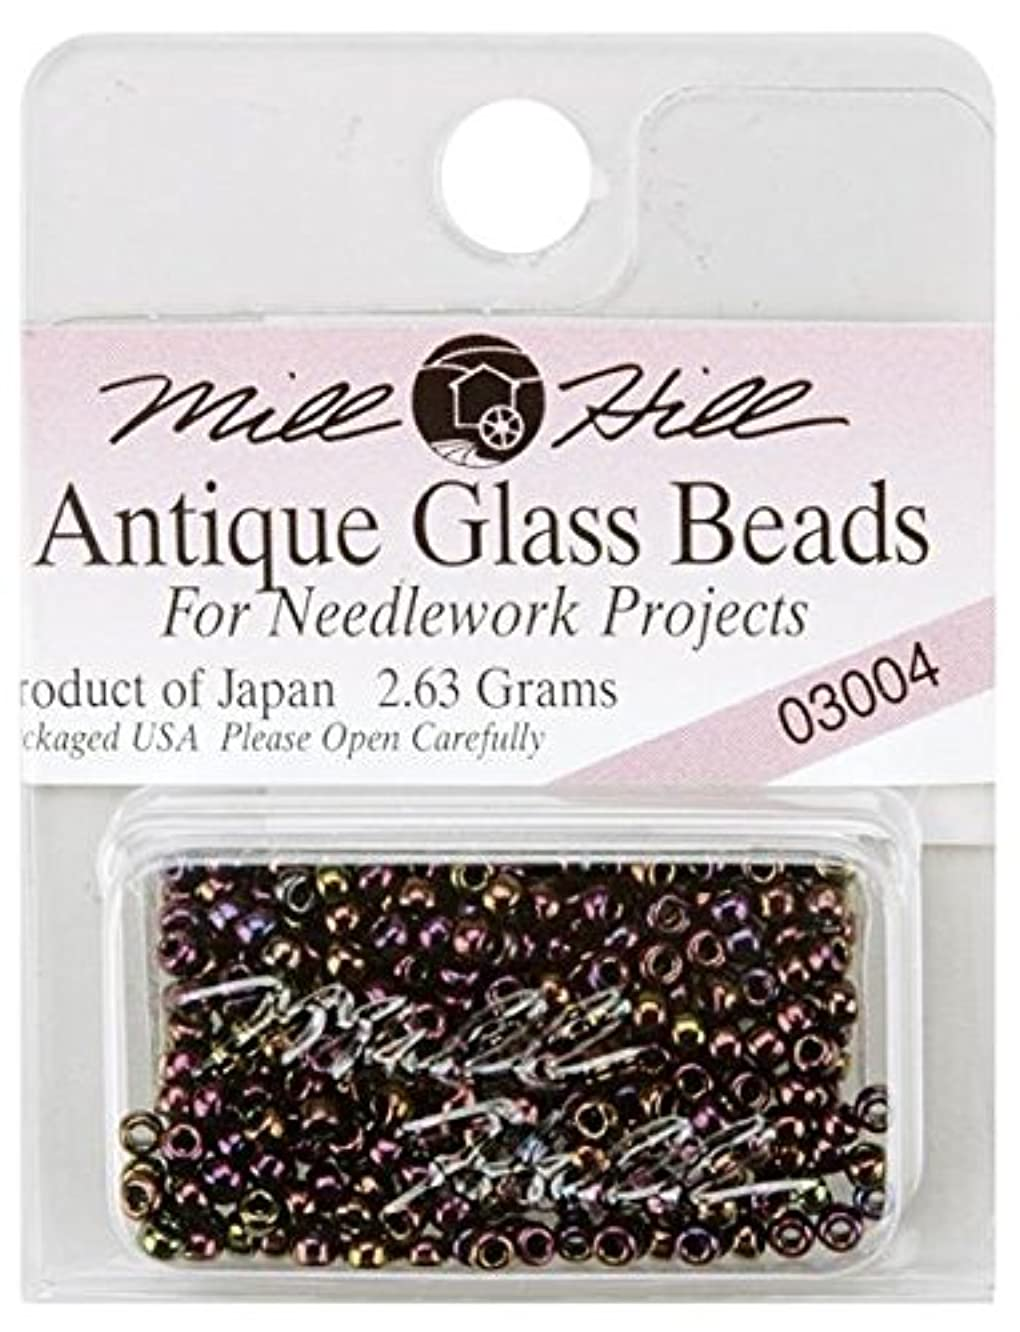 Mill Hill Antique Glass Seed Beads 2.5mm 2.63g, Eggplant